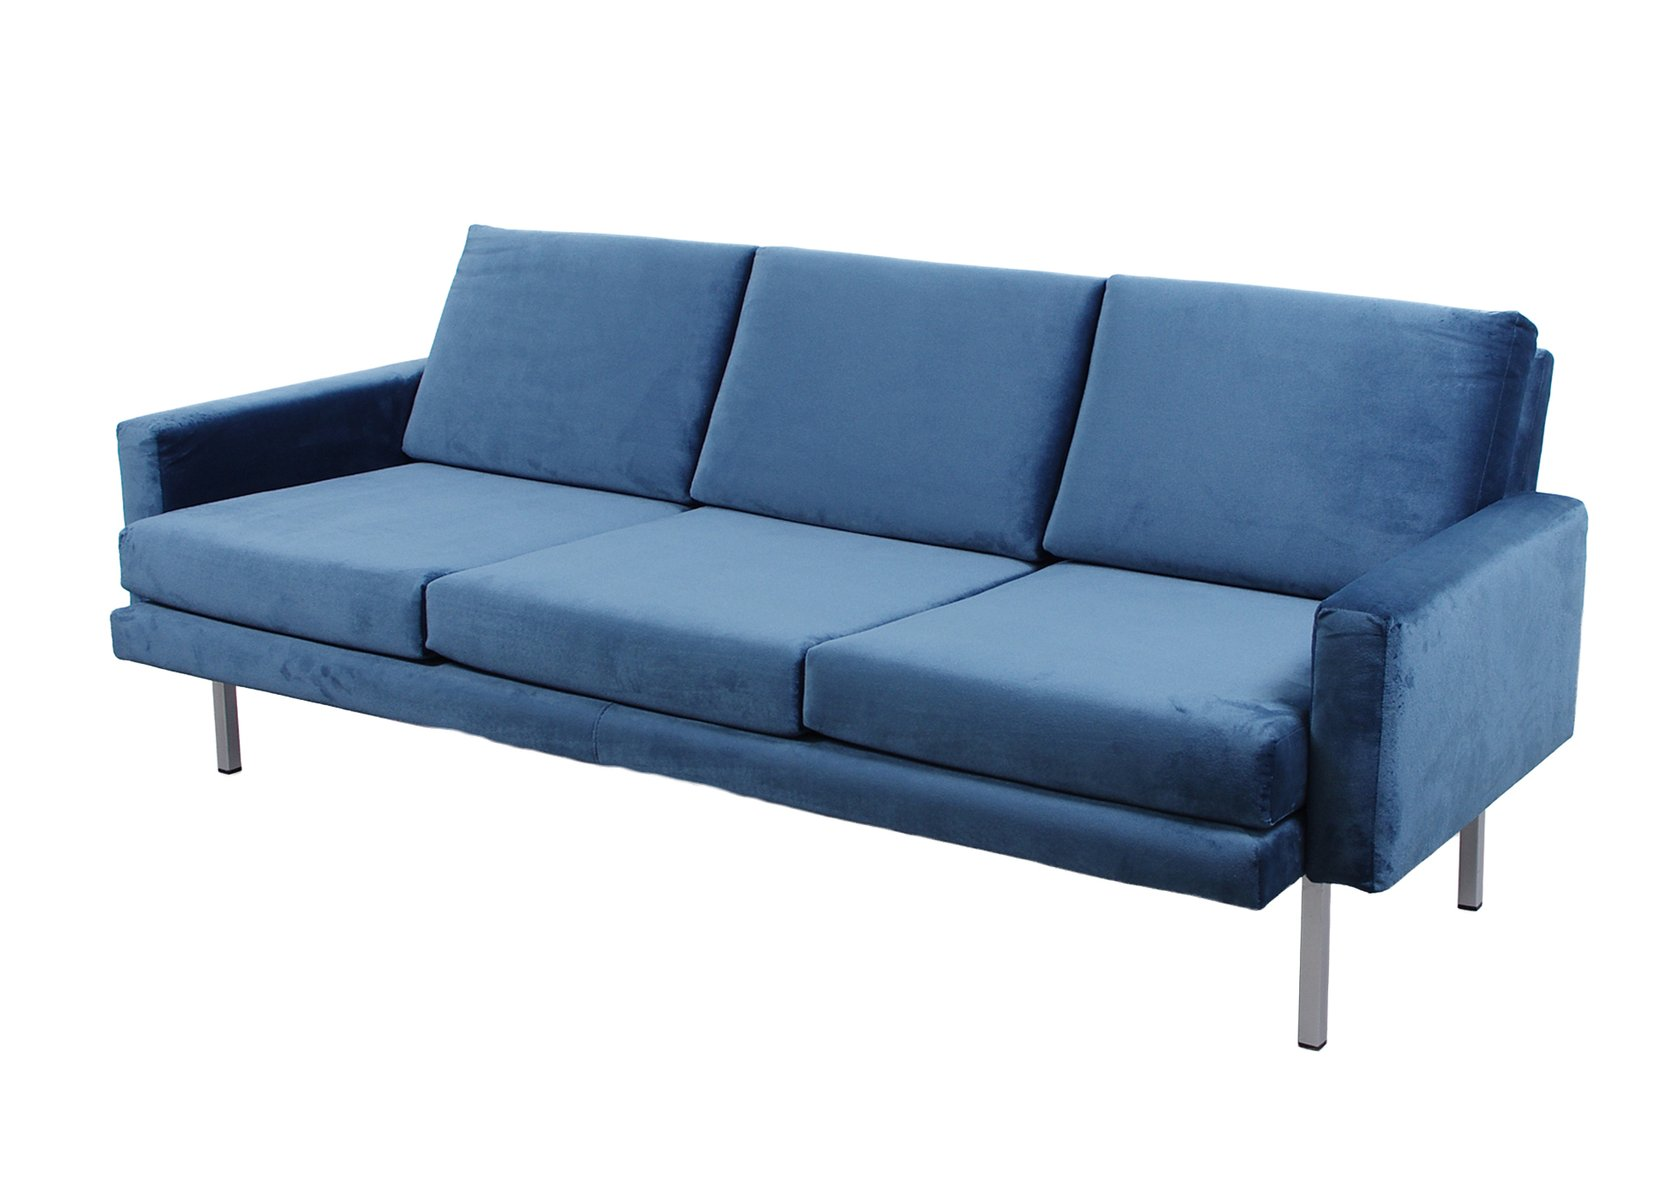 Bz Futon Dutch Bz44 Sofa By Martin Visser For T Spectrum 1960s